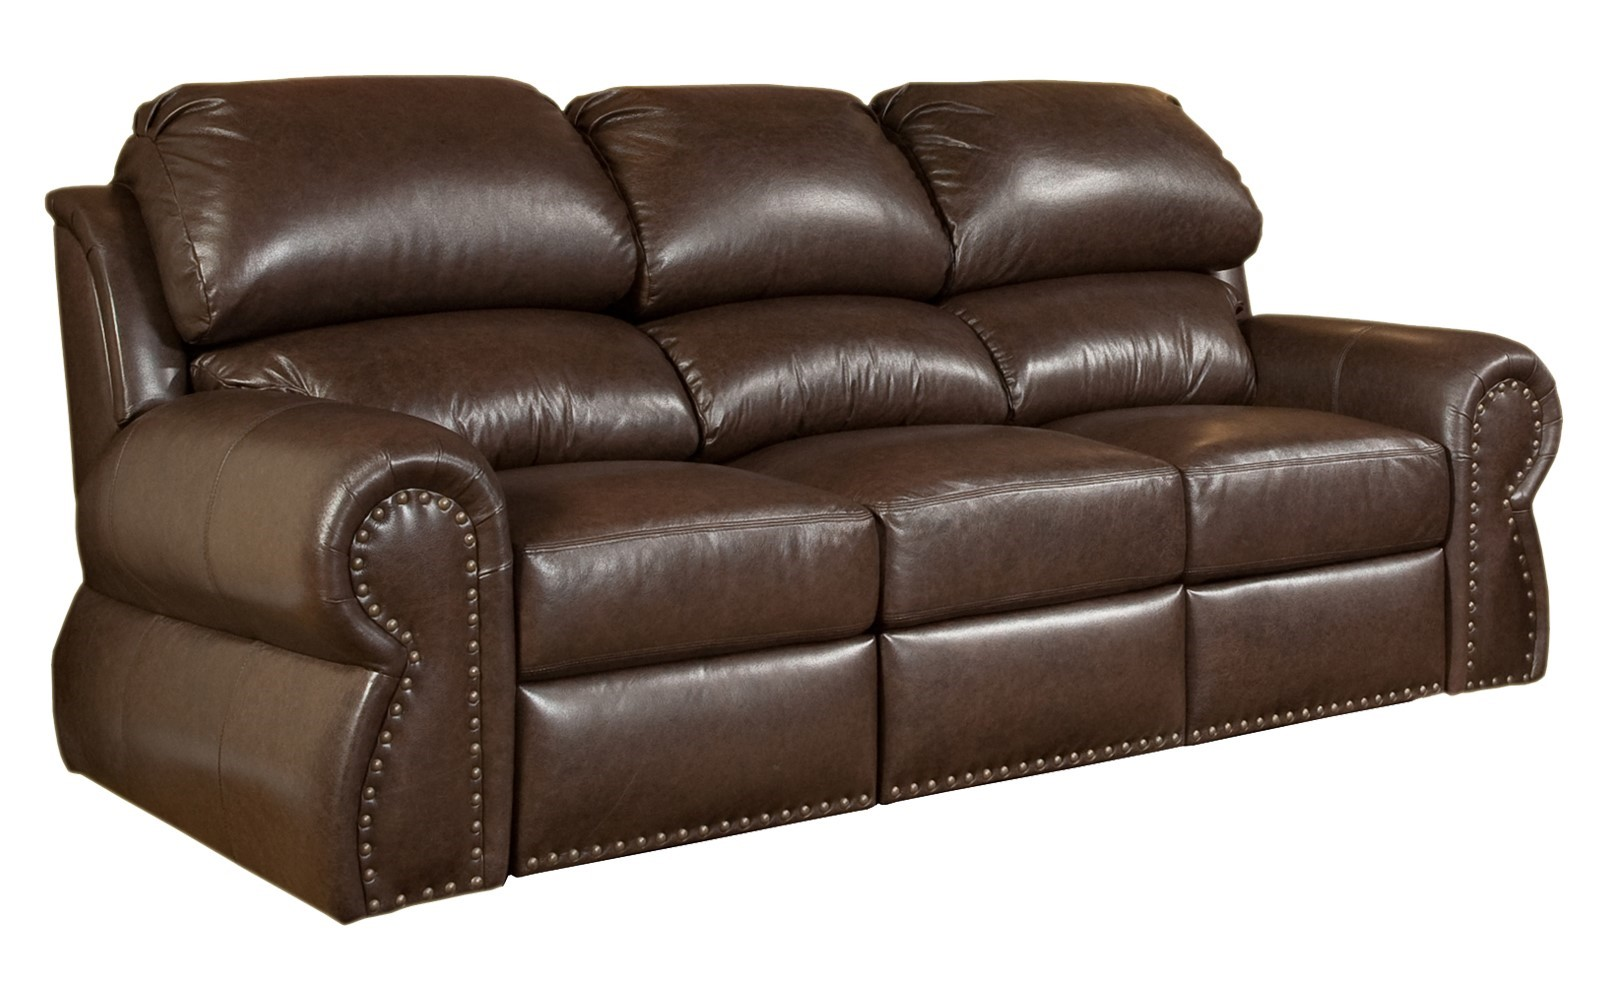 Custom design your very own luxury leather furniture at for Furniture accessories